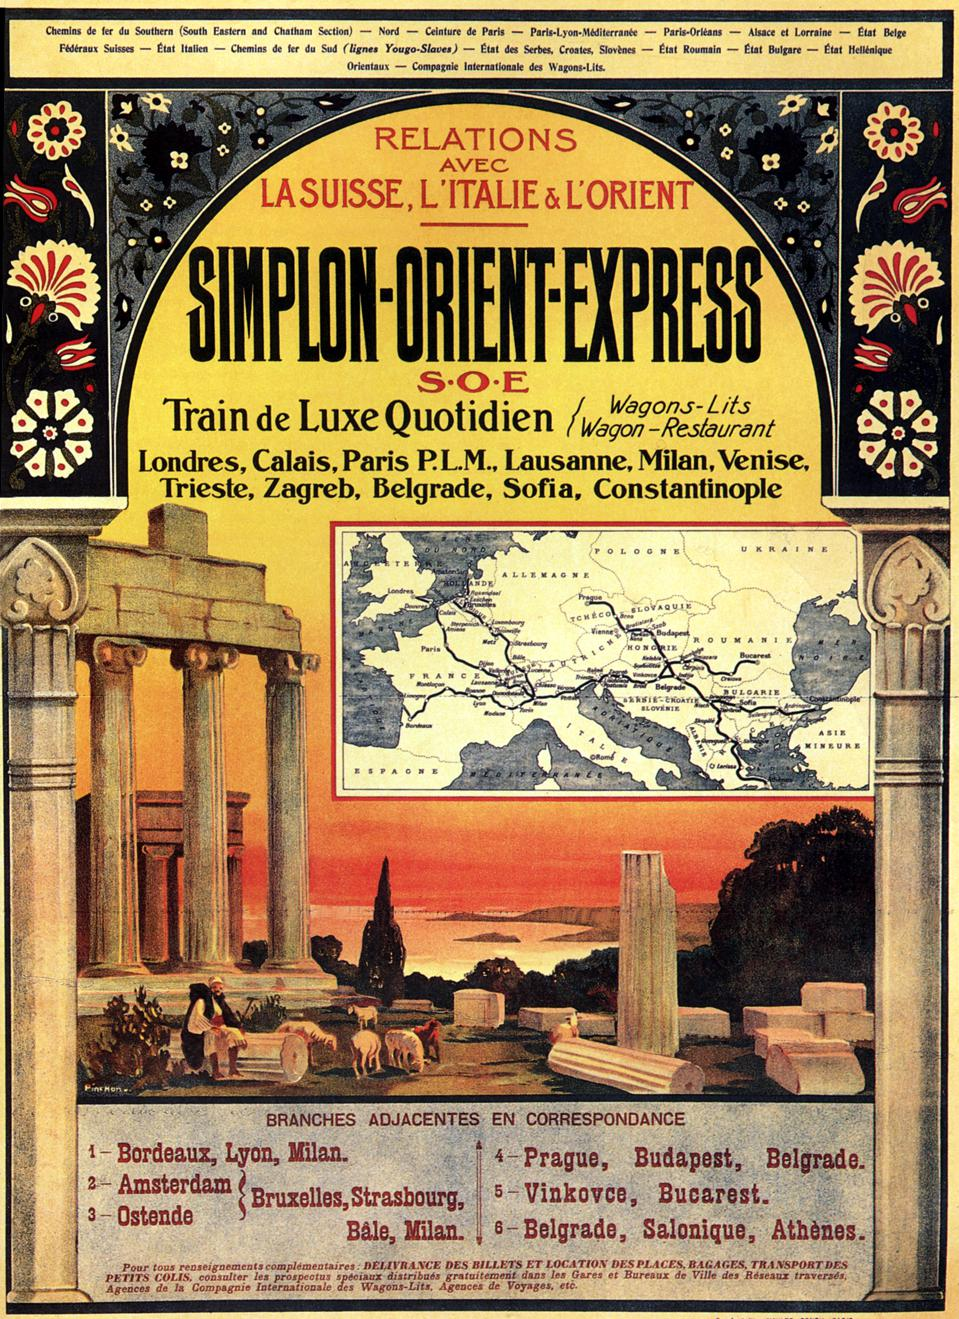 Poster for the luxury train Simplon Orient-Express linking London to Constantinople via Calais, Paris, Lausanne, Milan, Venise, Trieste, Zagreb, Belgrade and Sofia, the sleepers International Compagny (India Mail) , 20's